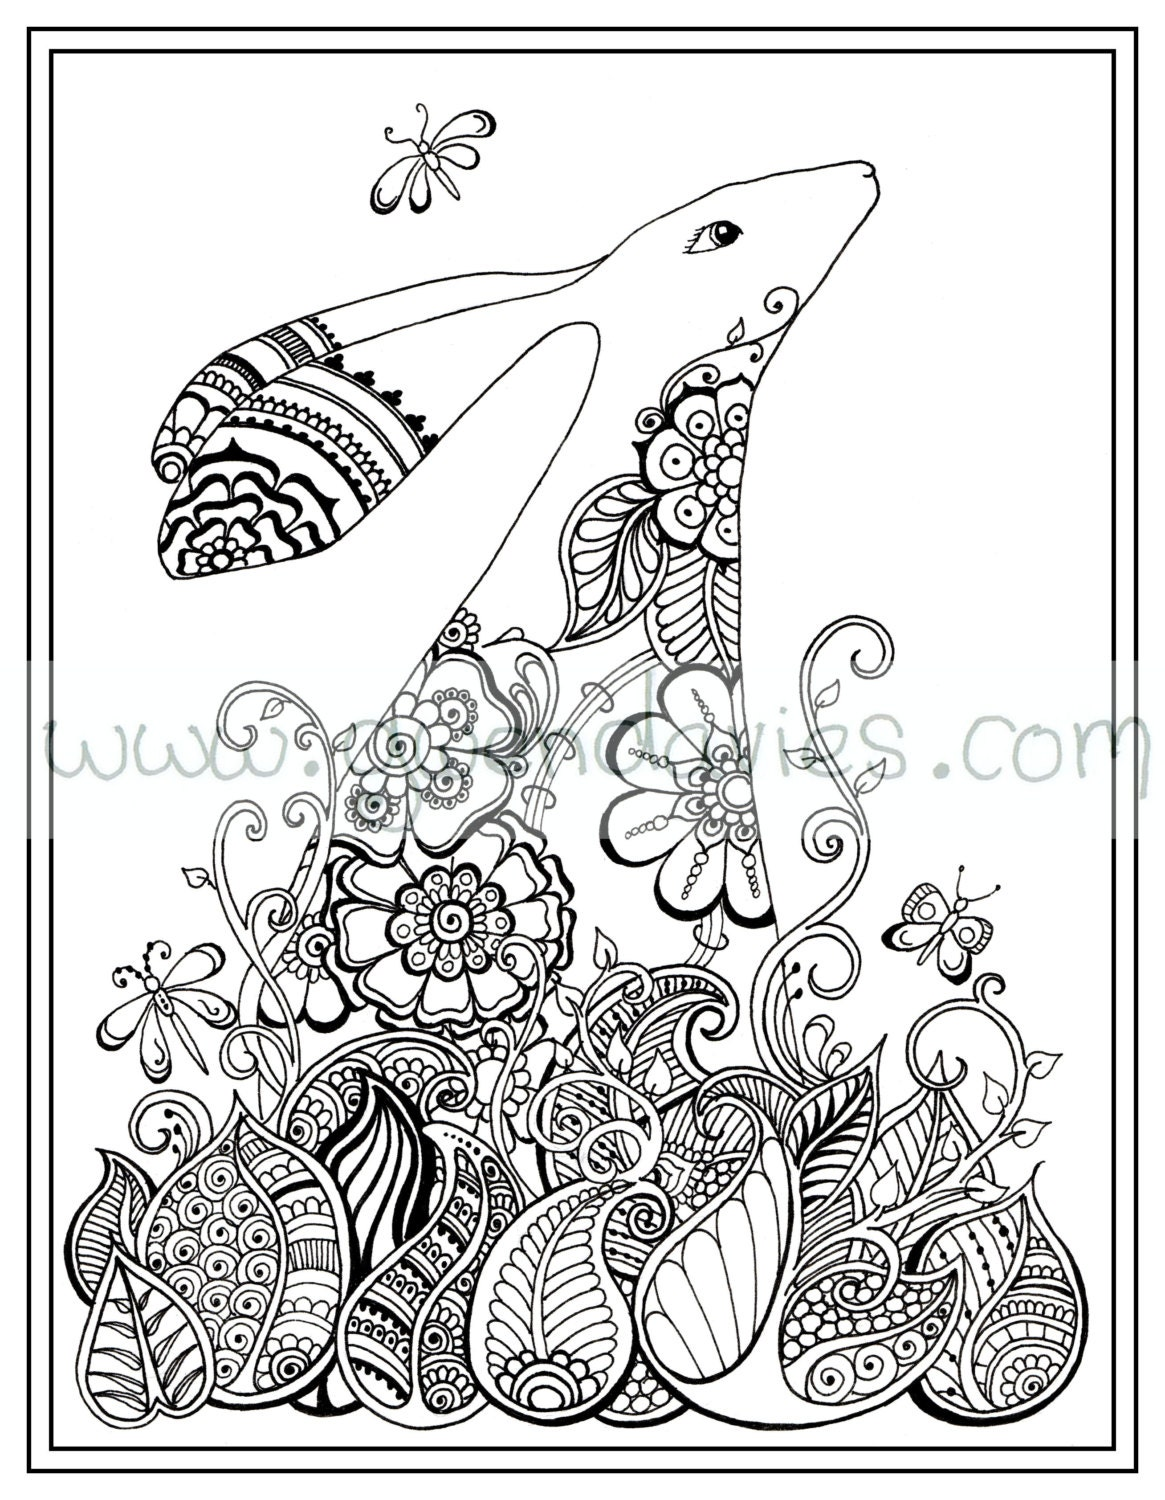 Mandala Market Gardens The Layout: Easter Activity, Colouring In PDF Download Hare Rabbit